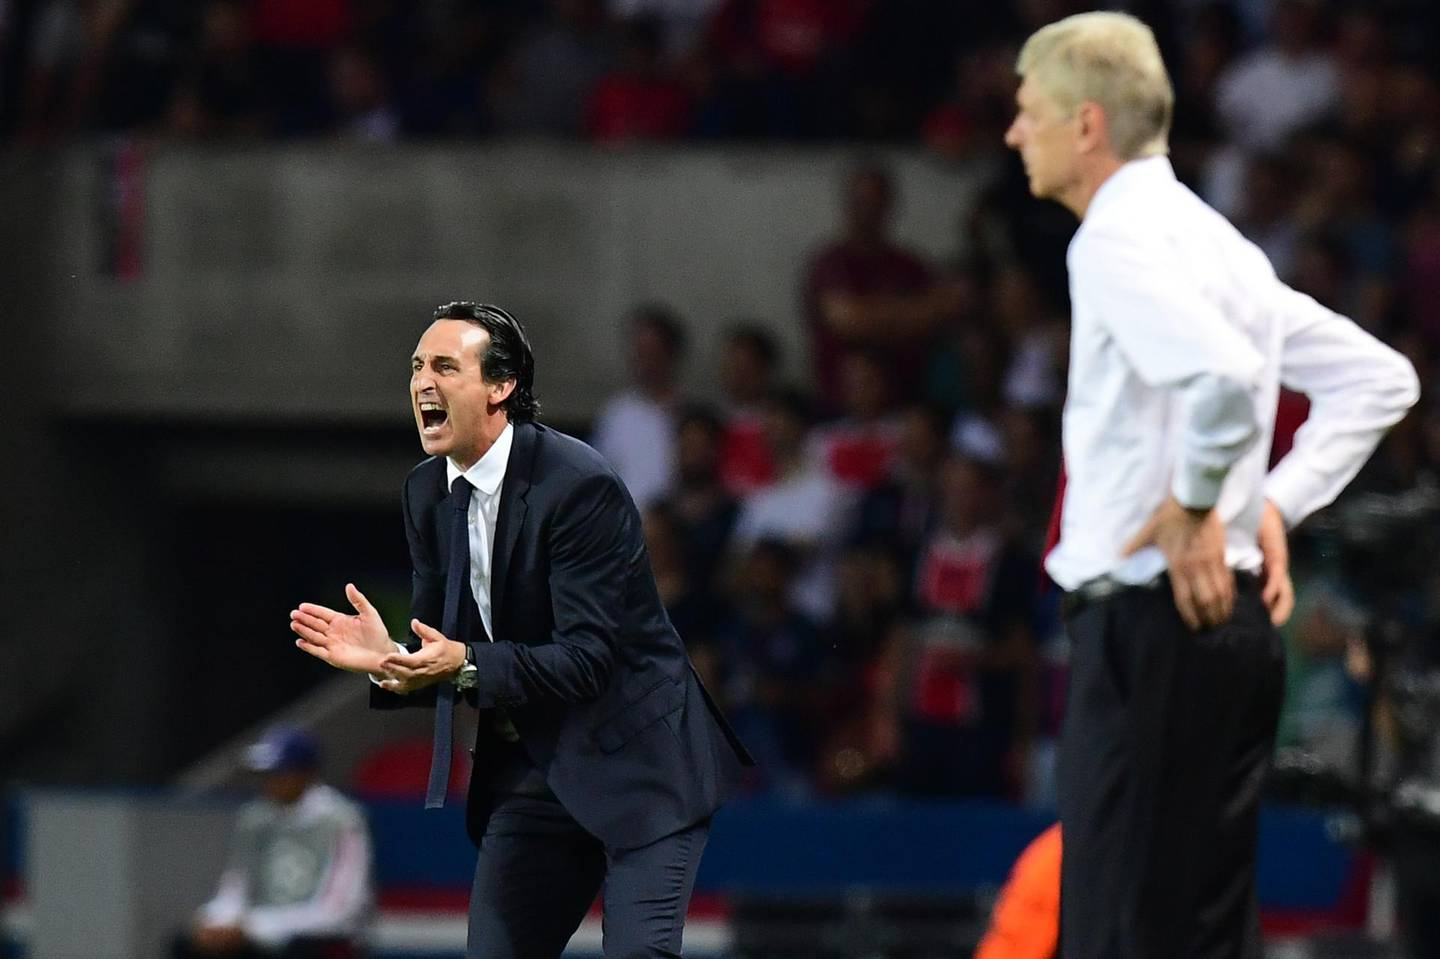 """(FILES) In this file photo taken on September 13, 2016, Paris Saint-Germain's Spanish head coach Unai Emery (L) gestures next to Arsenal's French manager Arsene Wenger during the UEFA Champions League Group A football match between Paris-Saint-Germain vs Arsenal FC, at the Parc des Princes stadium in Paris. Unai Emery has been appointed as the new manager of Arsenal, the club announced on May 23, 2018. """"Unai Emery is to become our new head coach,"""" said a statement on the club's website. """"He joins the club after completing a two-year spell at Paris Saint-Germain, where he recently landed the treble of Ligue 1, Coupe de France and the Coupe de la Ligue."""" / AFP / FRANCK FIFE AND FRANCK FIFE"""